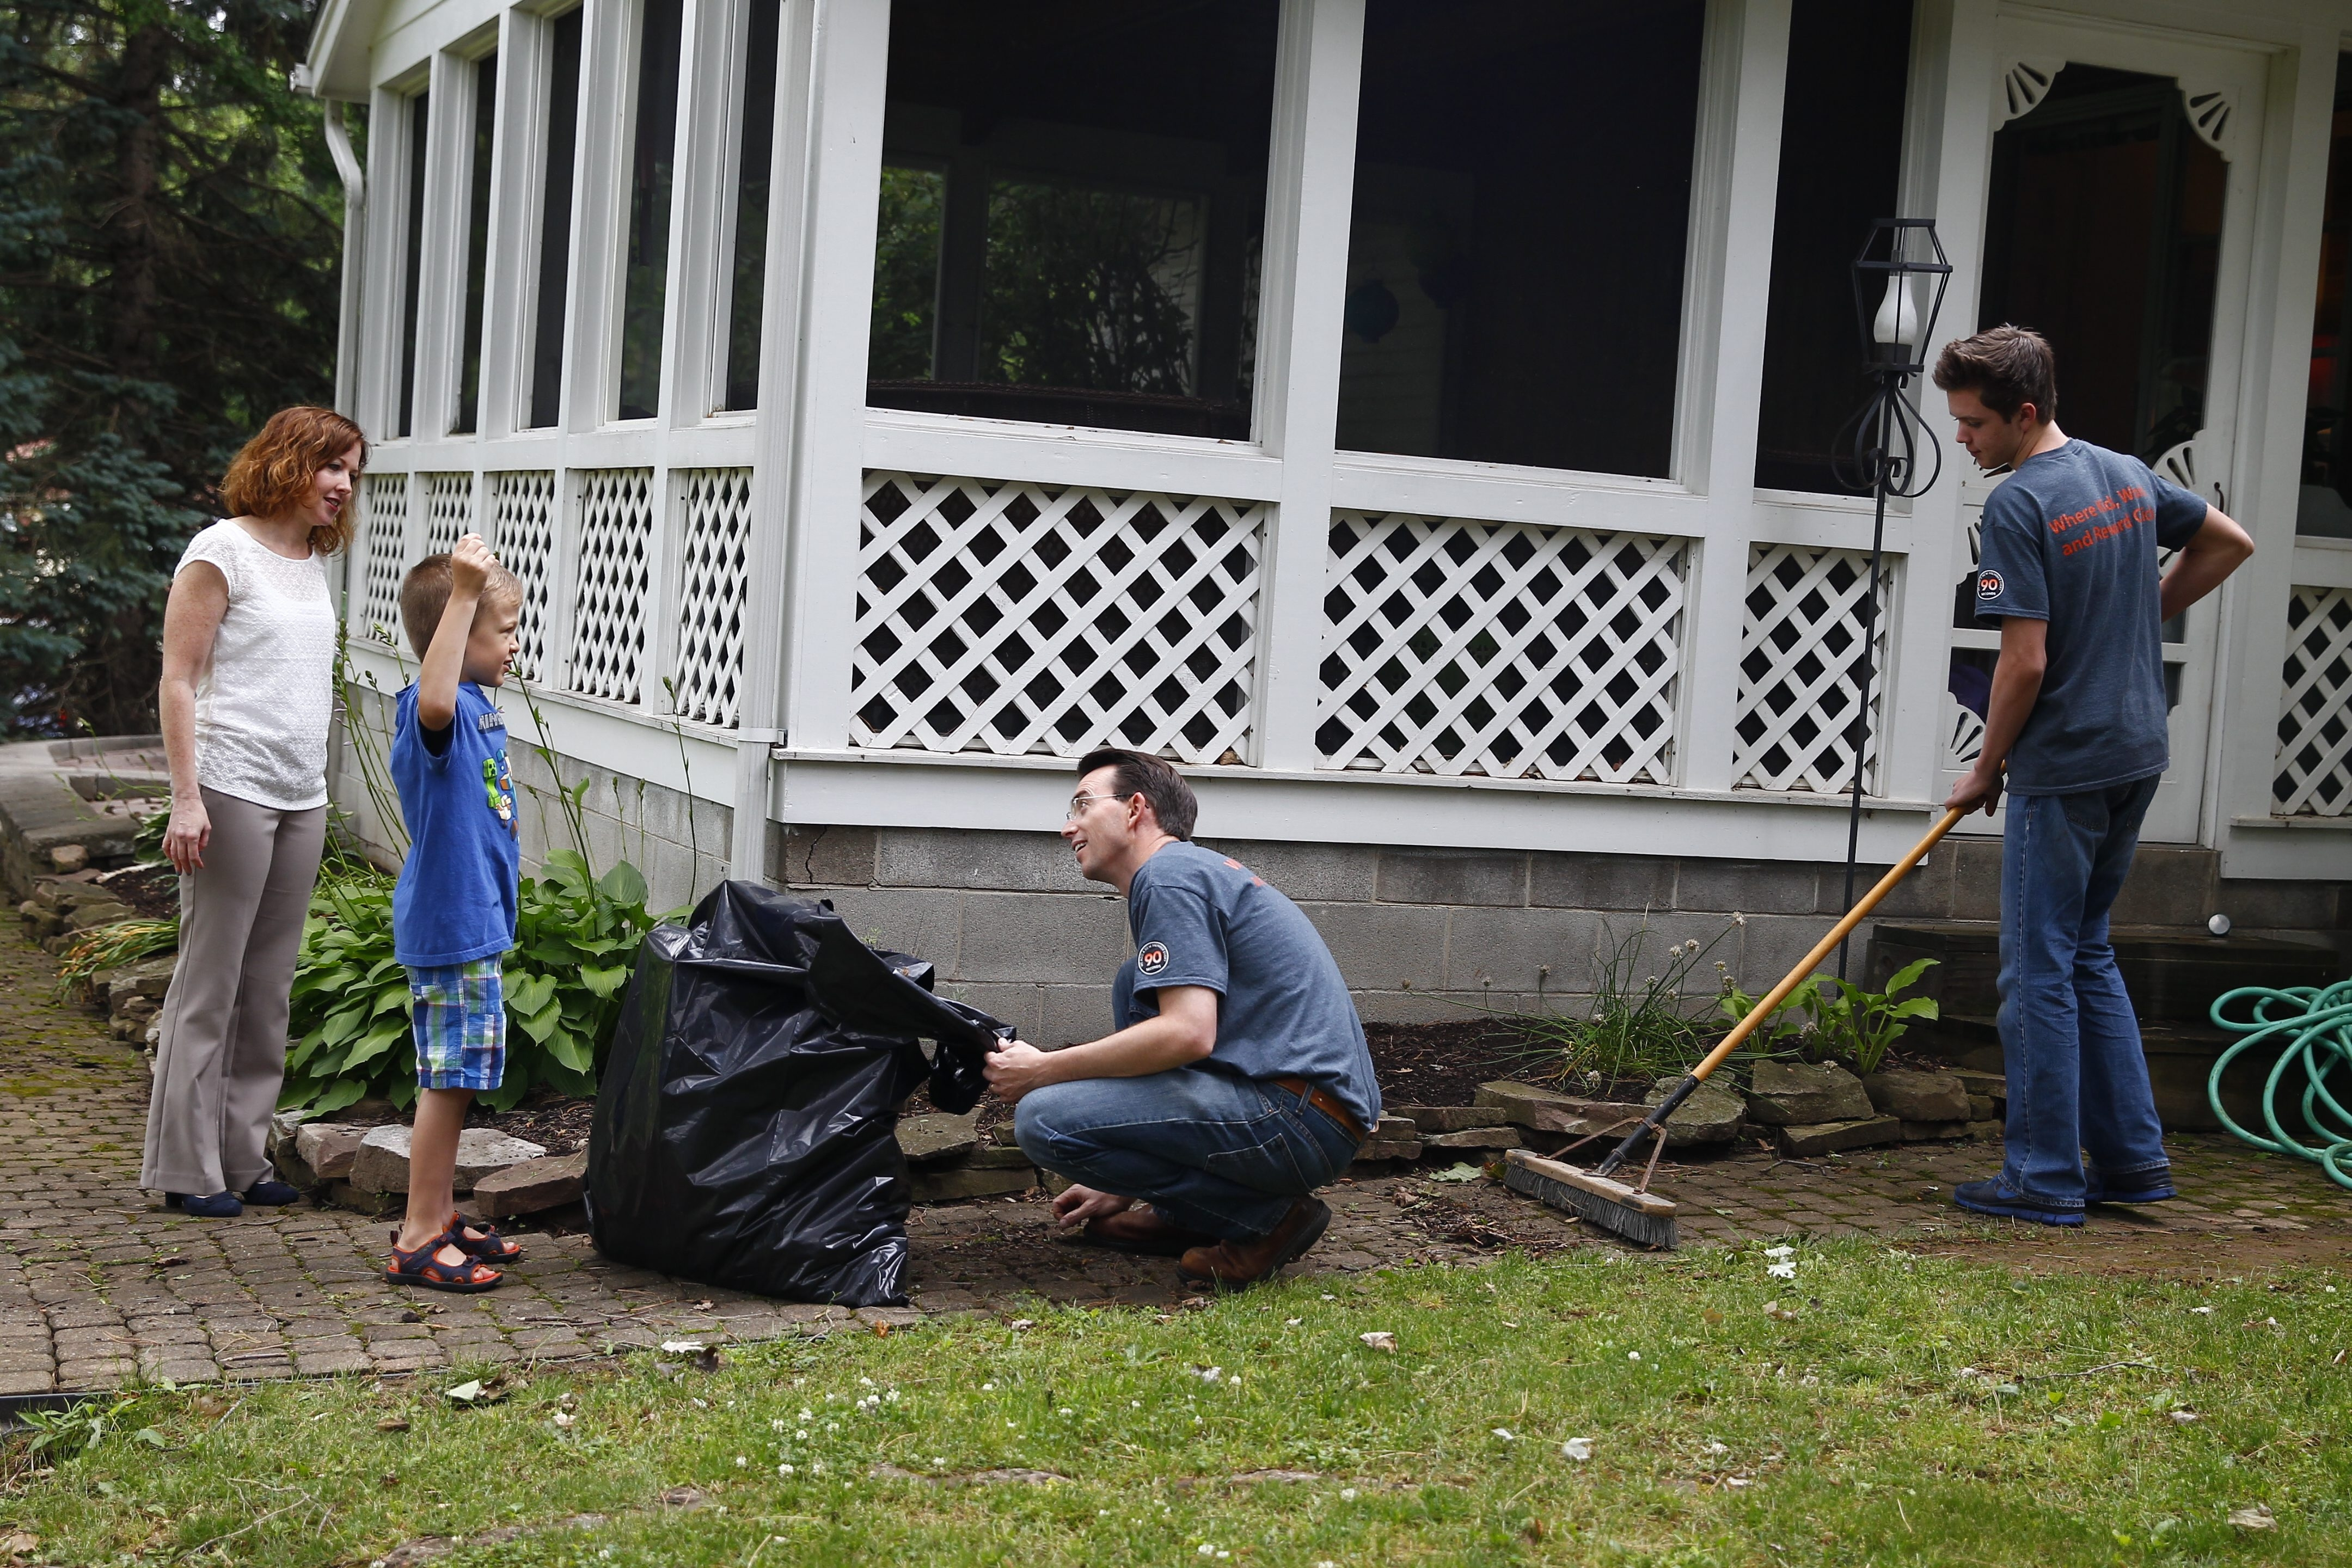 Caroline Lewandowski, left, and her son, Mike, 6, talk with Gregg Murset and his son Zach, of Arizona, who stopped Wednesday at the Lewanowski home in Lockport to help them with chores.